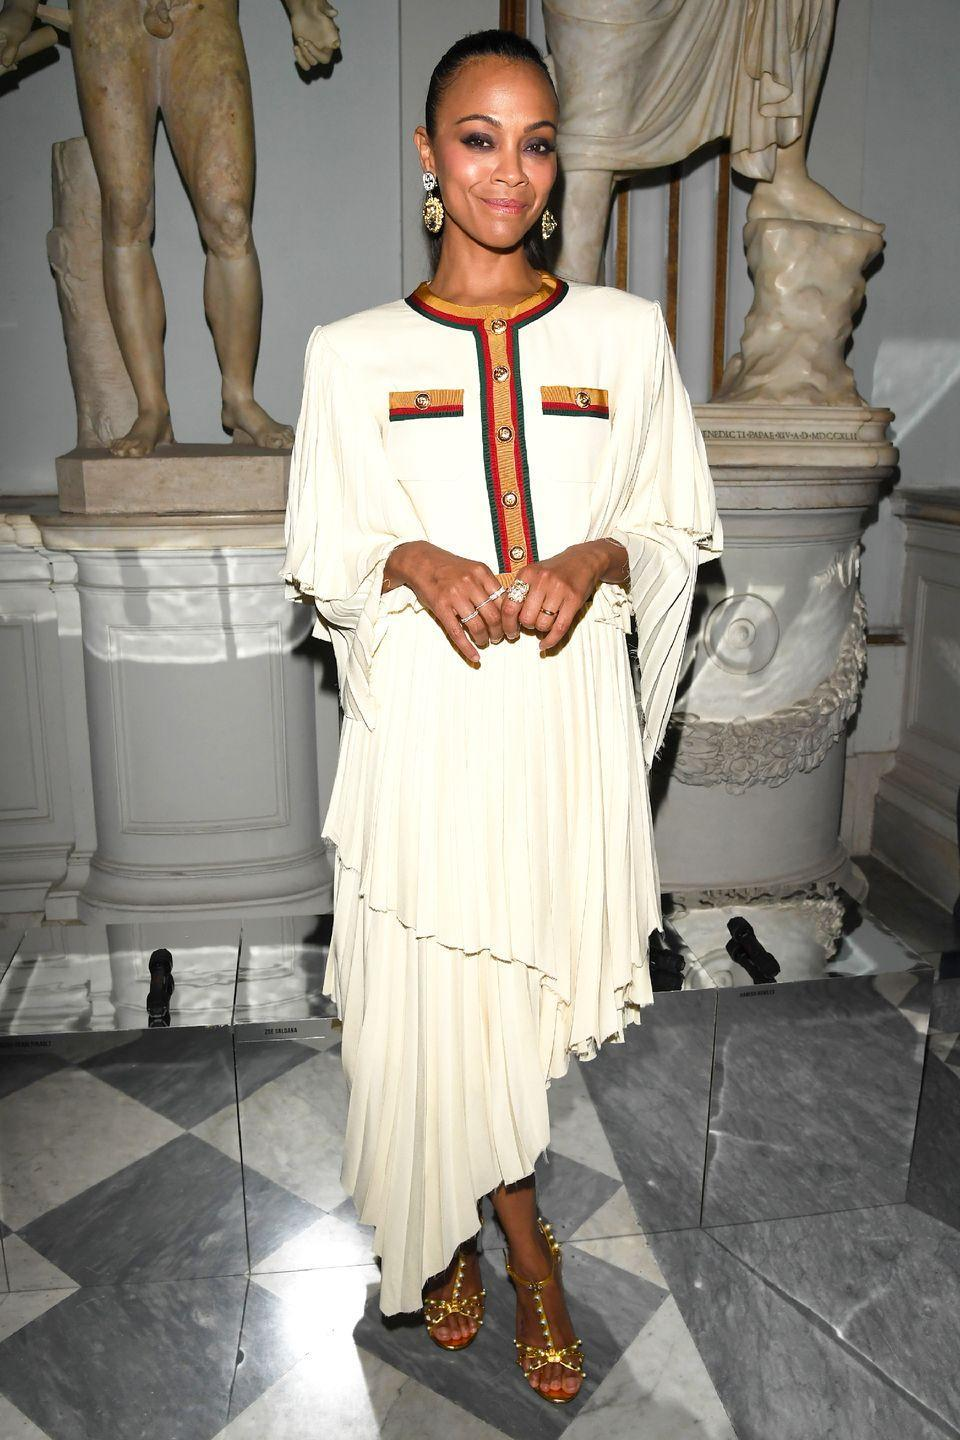 """<p>Who: Zoe Saldana</p><p>When: May 28, 2019</p><p>Wearing: Gucci</p><p>Why: Zoe Saldana's outfit at the Gucci Cruise show in Rome, Italy is giving us major """"strict-but-loving professional mom in an '80s sitcom"""" vibes. Excuse us while we re-introduce shoulder pads into our wardrobe. </p>"""